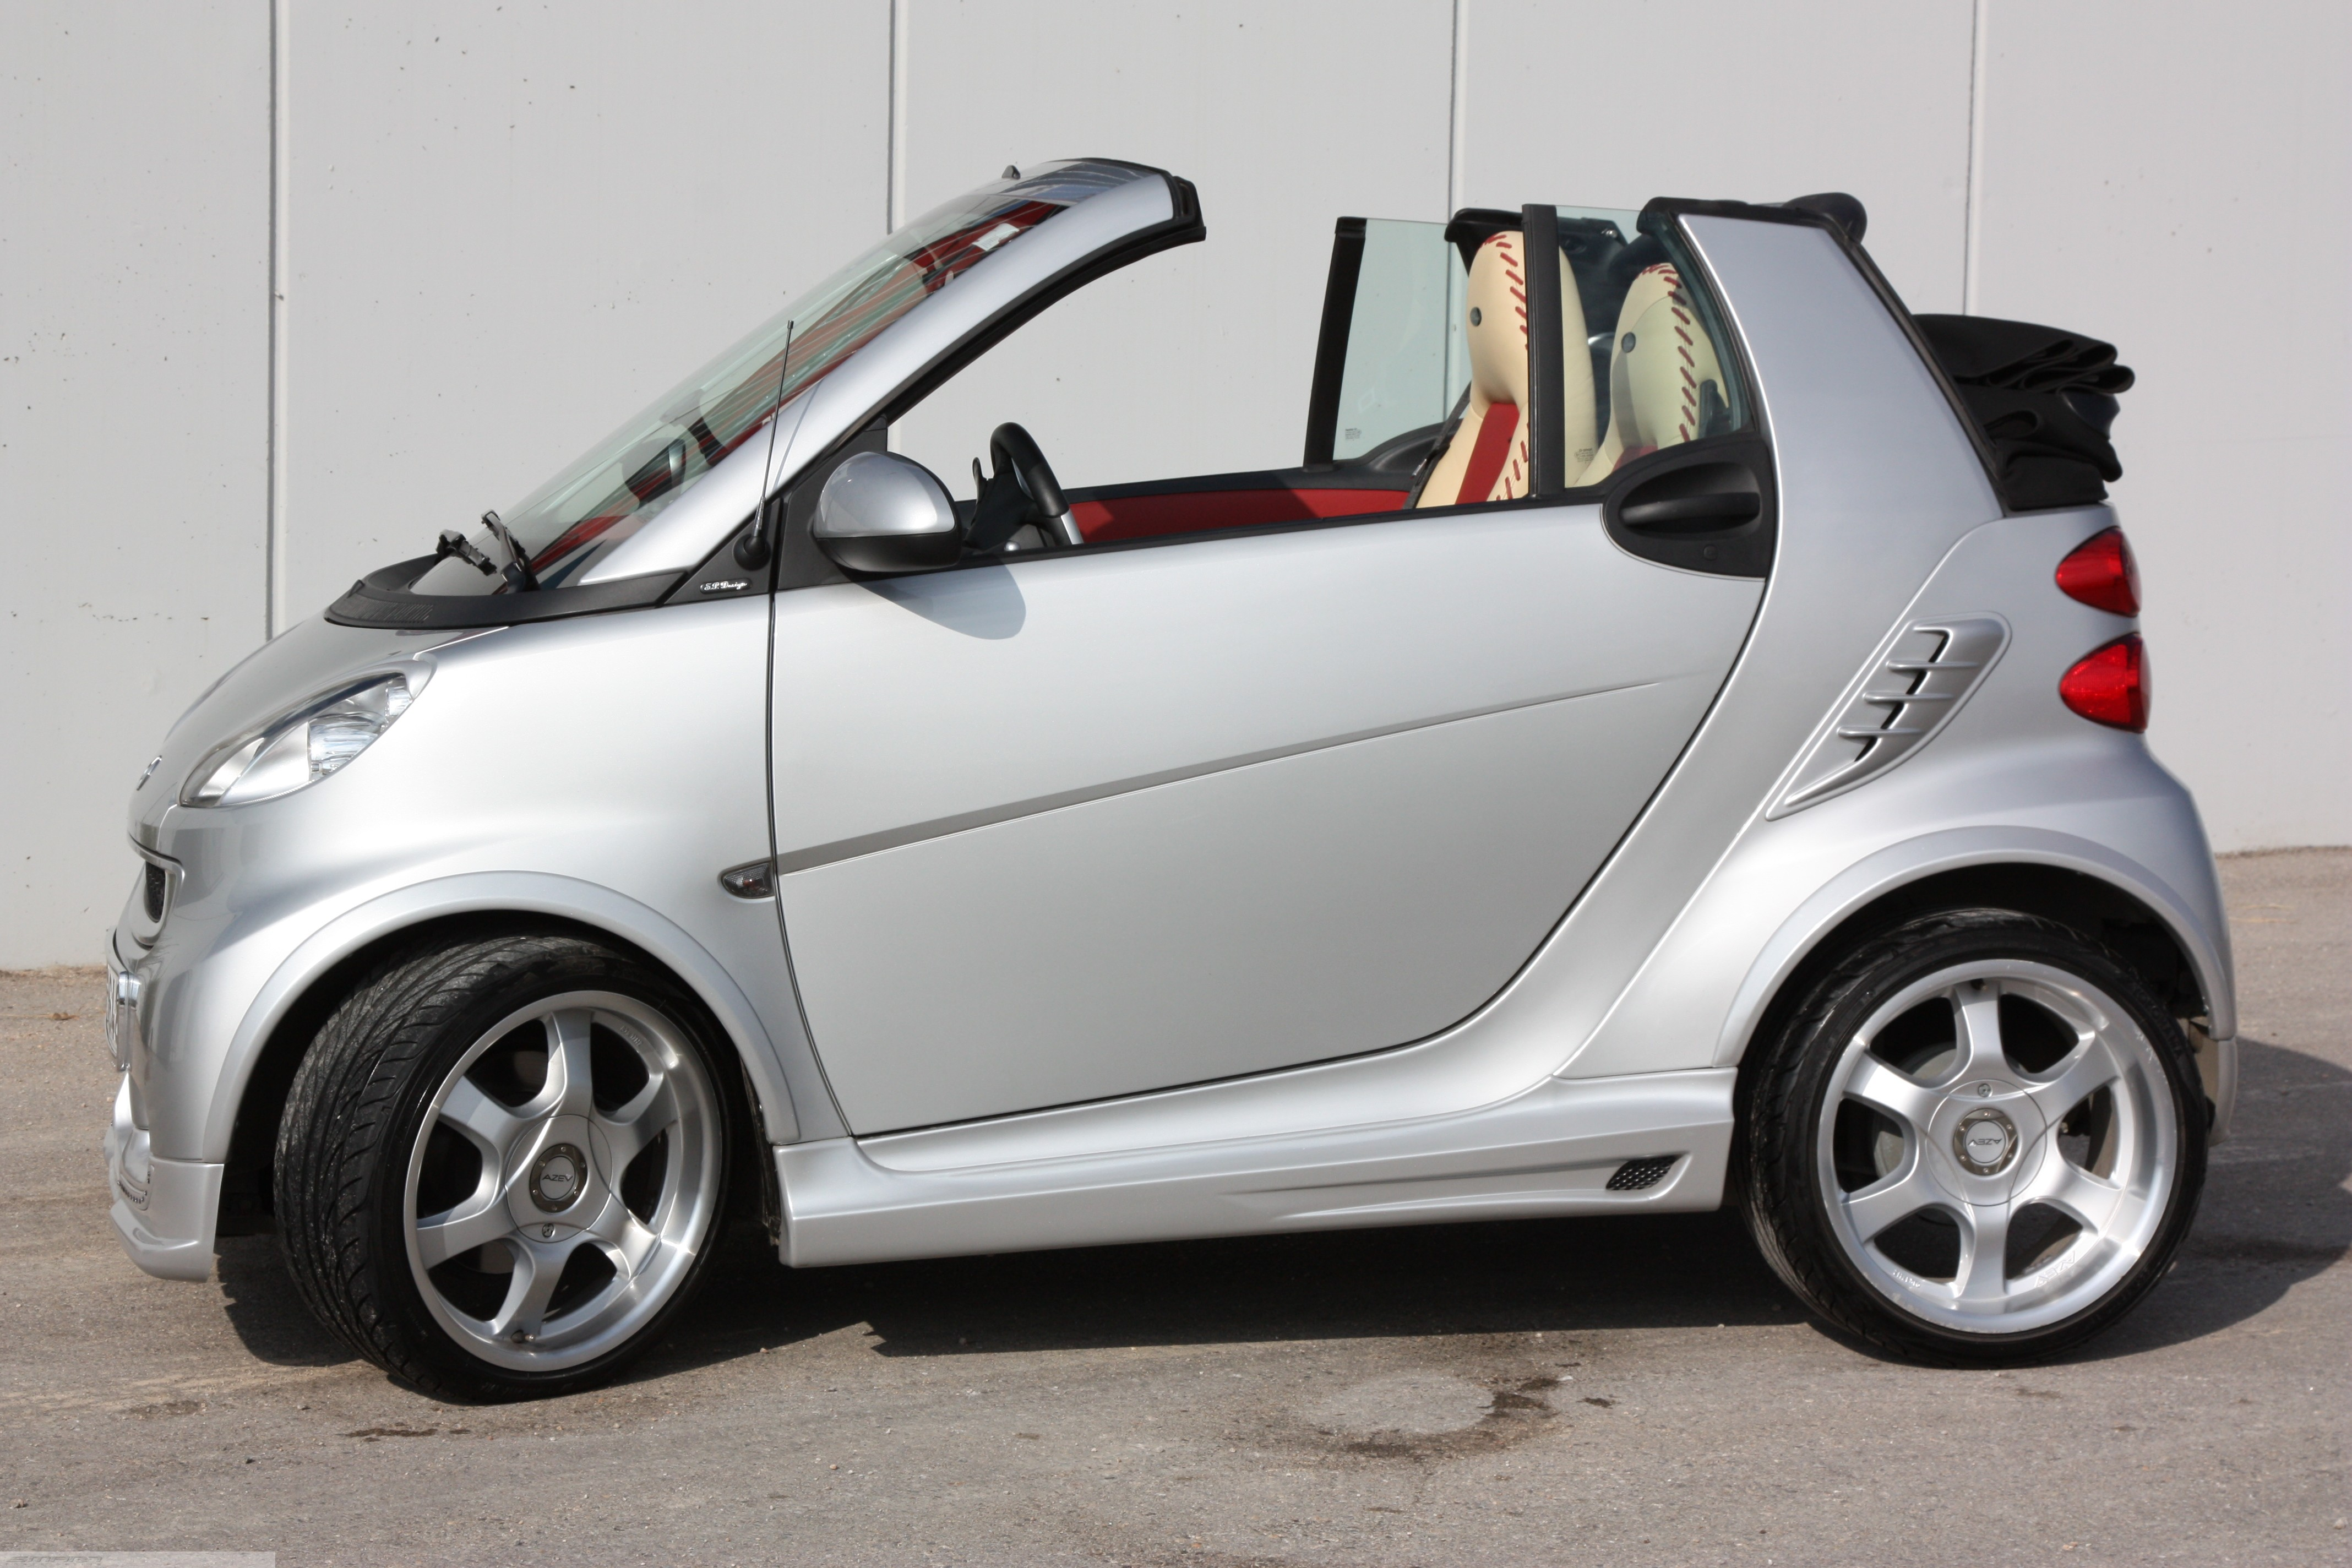 smart car analysis Daimler's smart brand has confirmed it will stop selling gasoline-powered vehicles in the us and canada, focusing exclusively on an electrified version of its two-seat fortwo model it is the latest development in a series of setbacks for smart, which has continued to lose ground despite a.